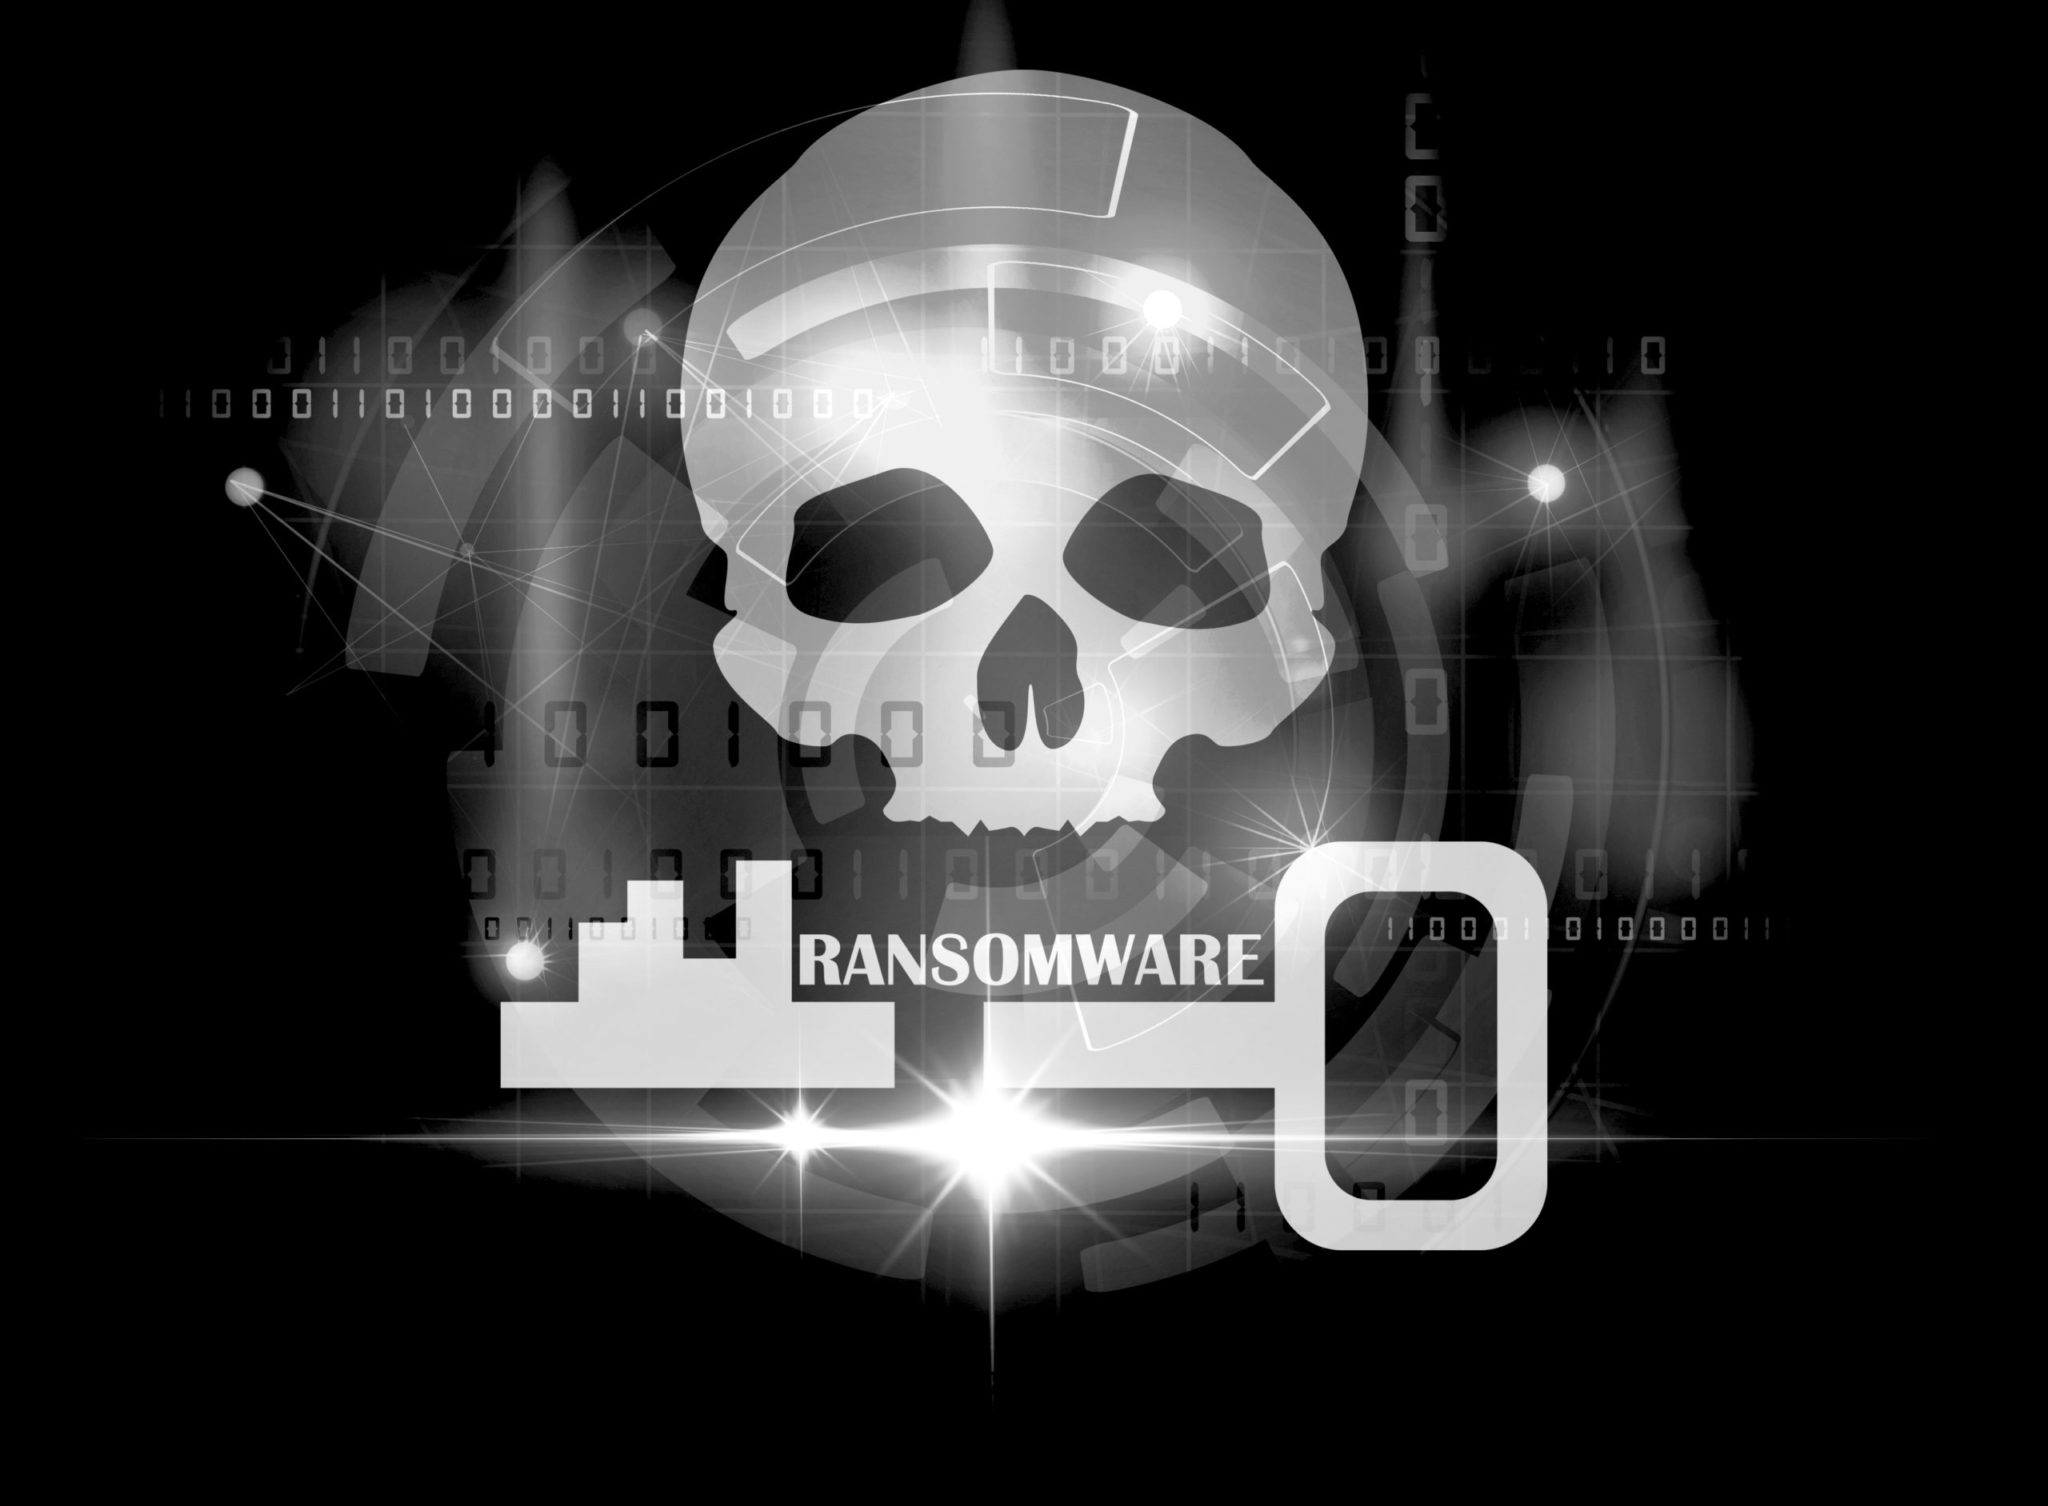 What is ransomware?